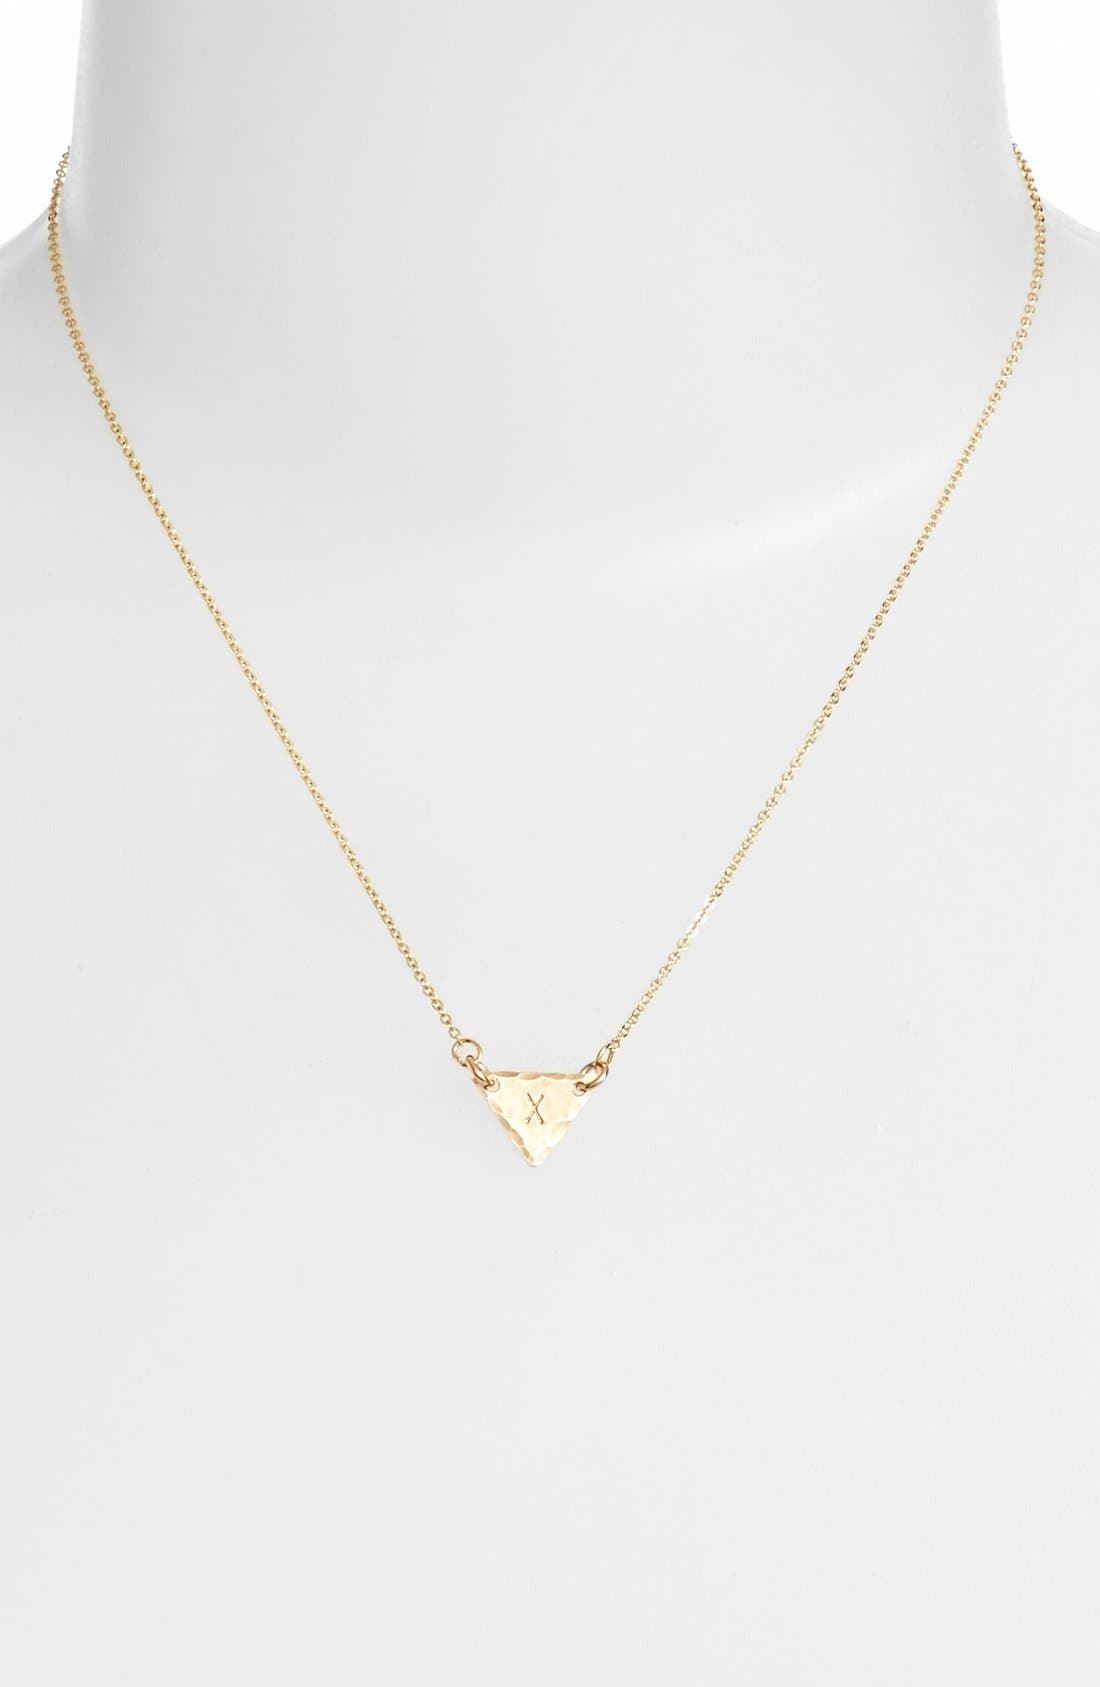 14k-Gold Fill Initial Triangle Necklace,                             Alternate thumbnail 50, color,